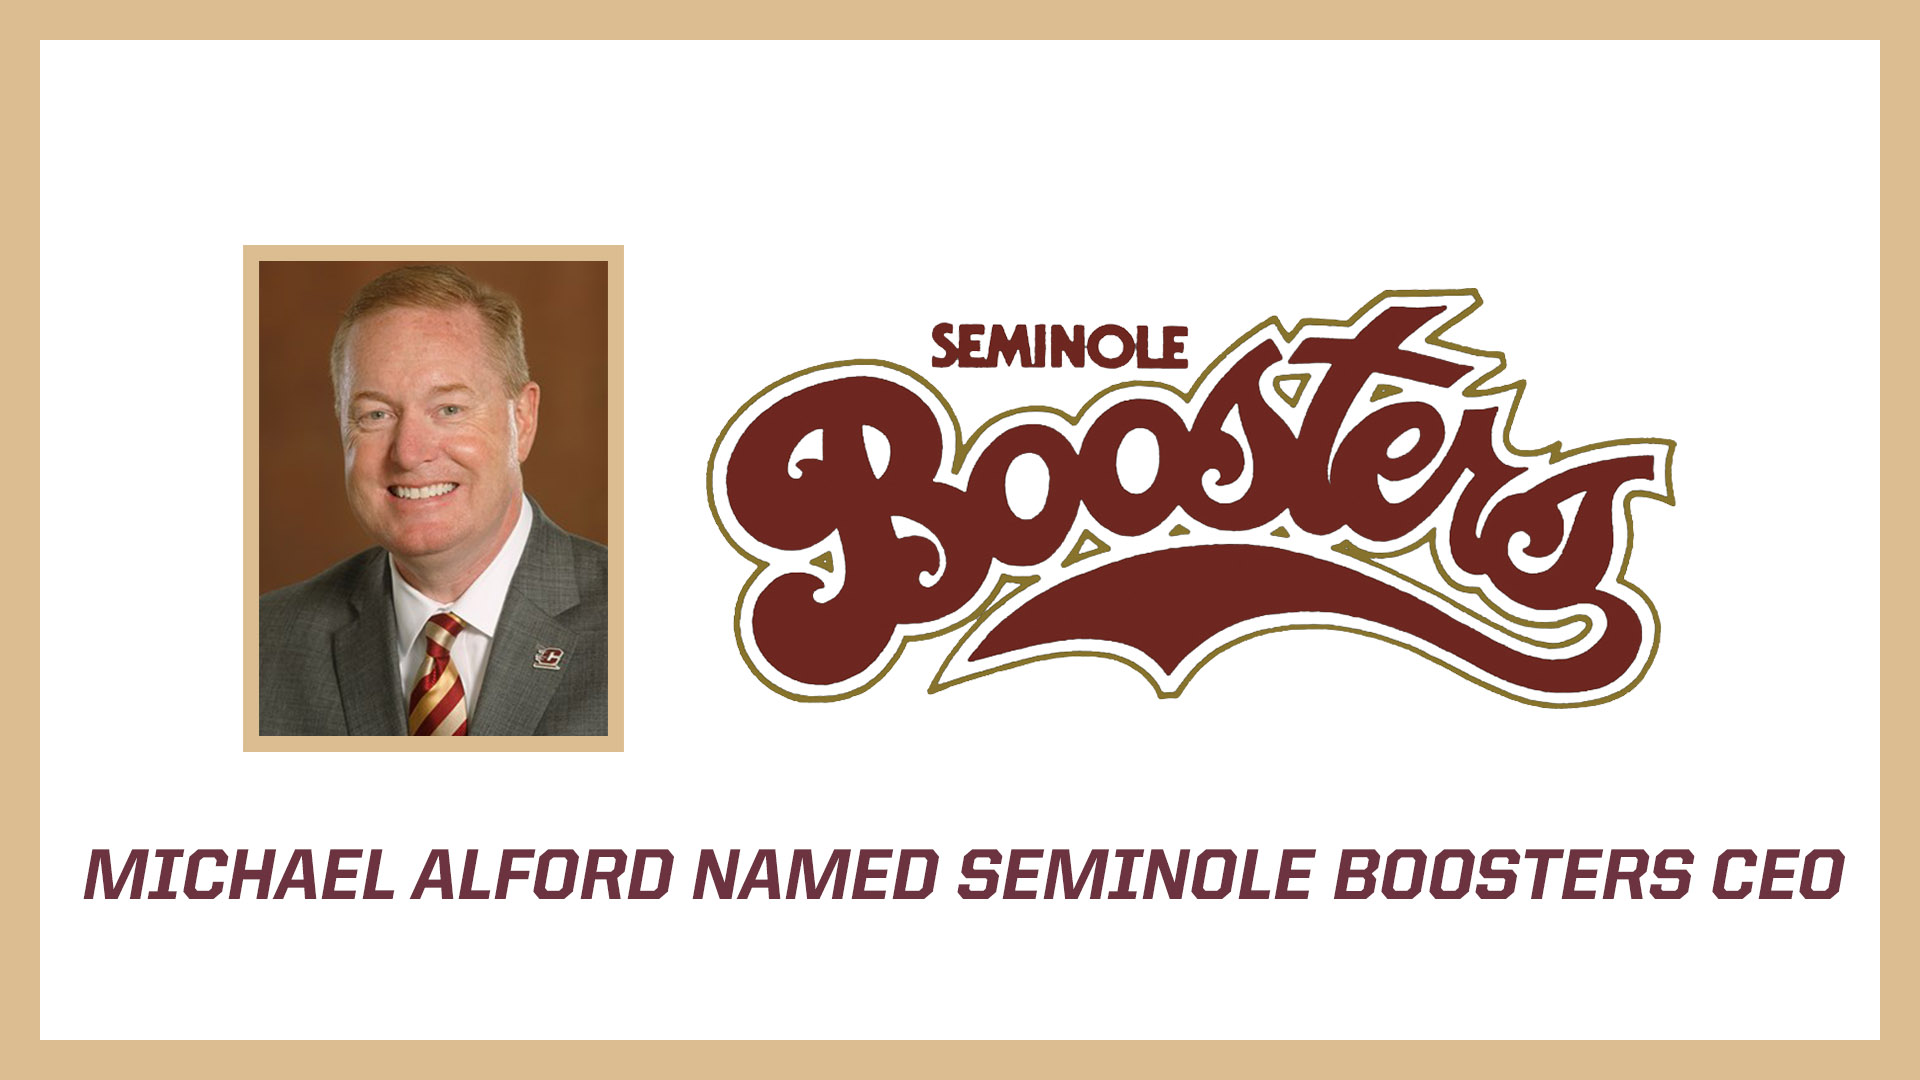 MICHAEL ALFORD NAMED CEO OF SEMINOLE BOOSTERS, INC.